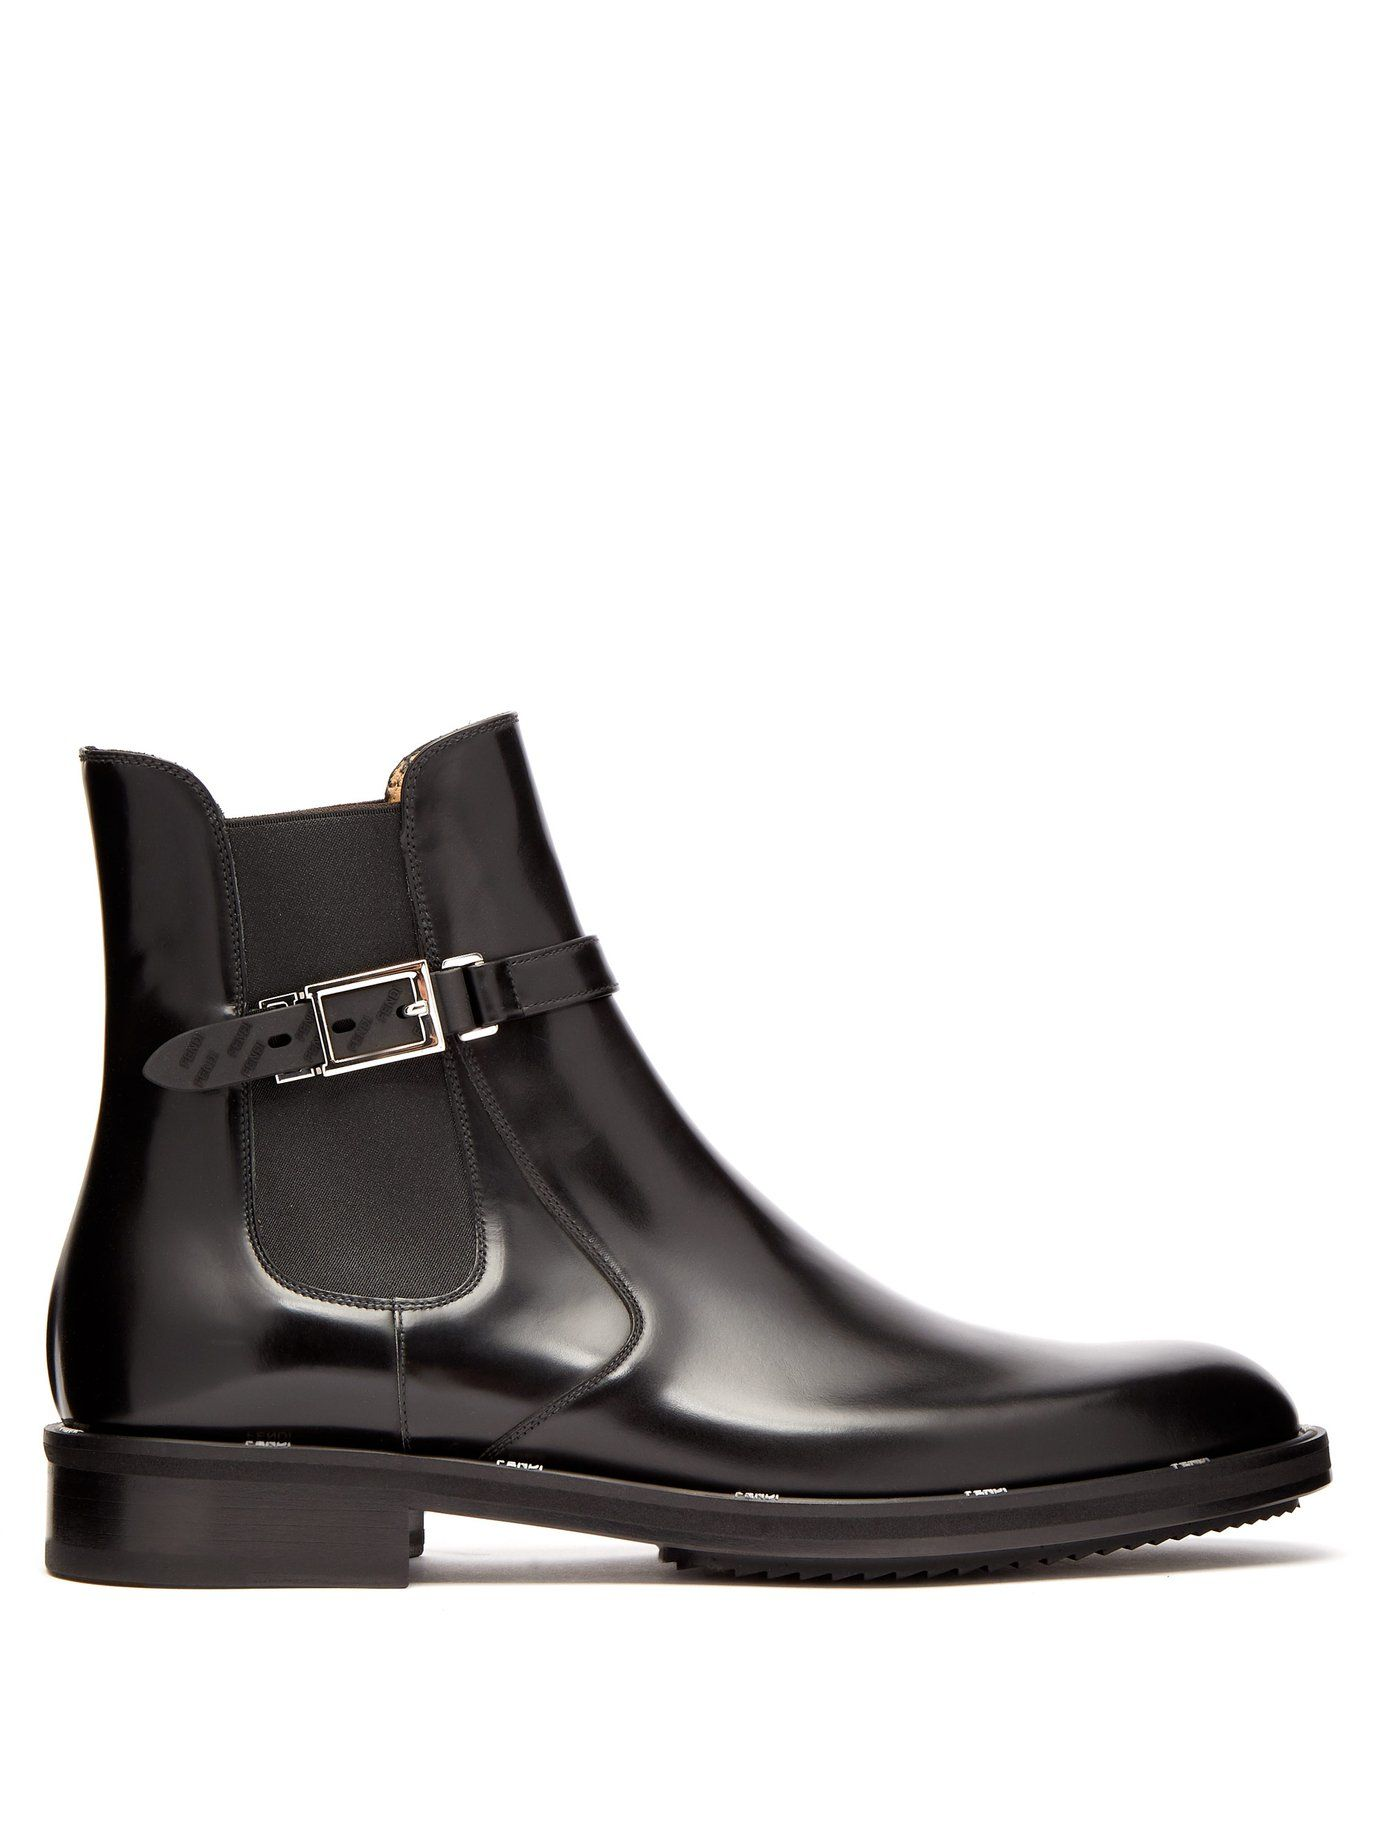 a960e60e2b86a7 Buckled leather chelsea boots | Fendi | MATCHESFASHION.COM UK ...